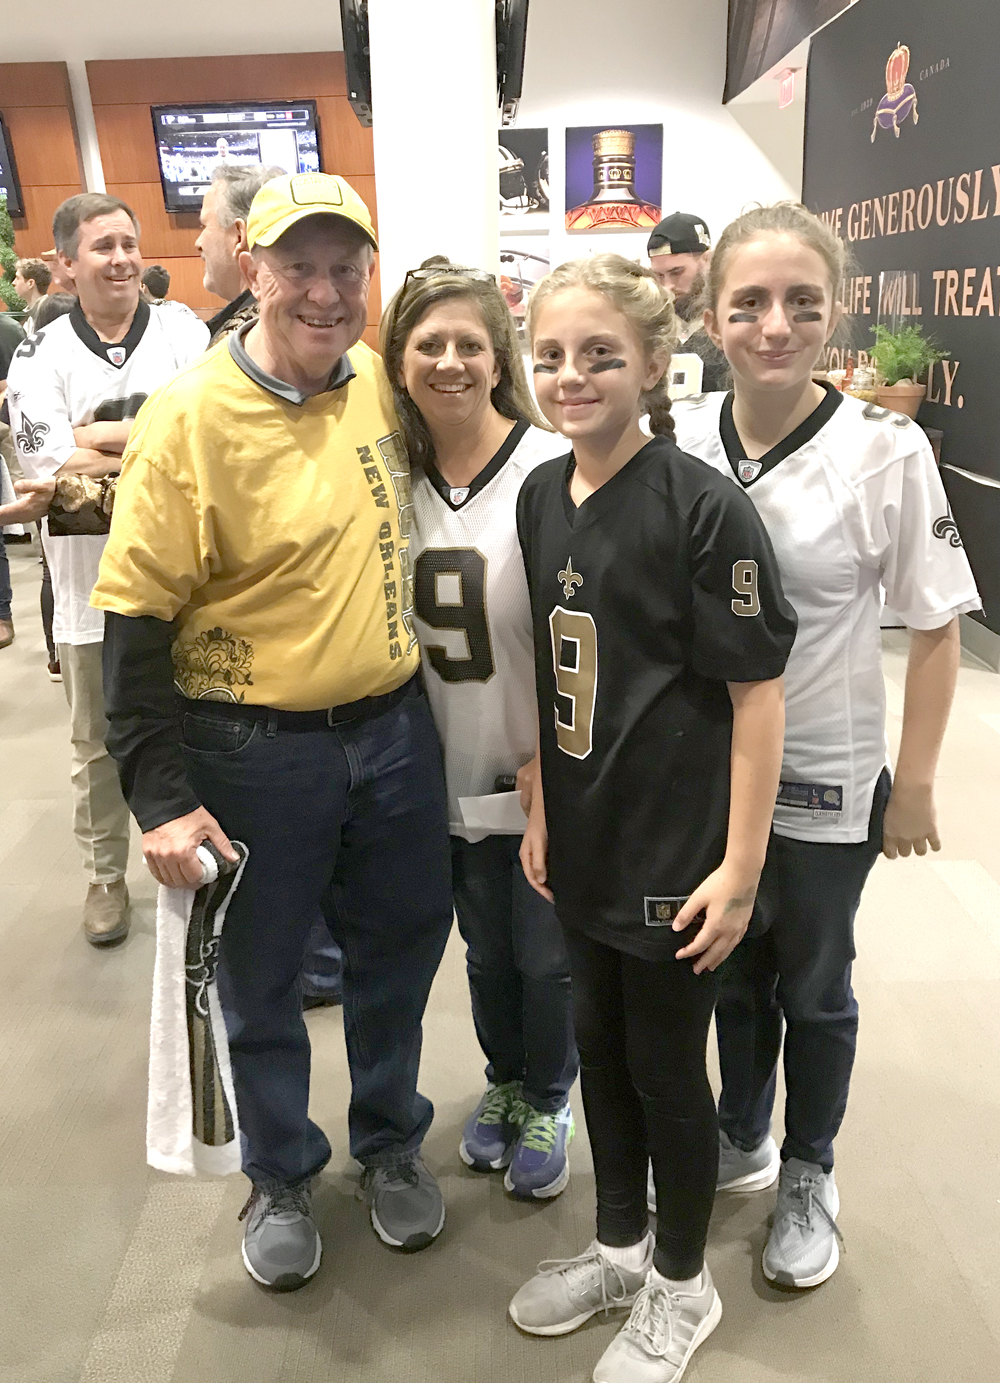 #EncoreRehab President Paul Henderson was pleasantly surprised to run into Clinic Director Dawn O'Keefe at the New Orleans Saints game